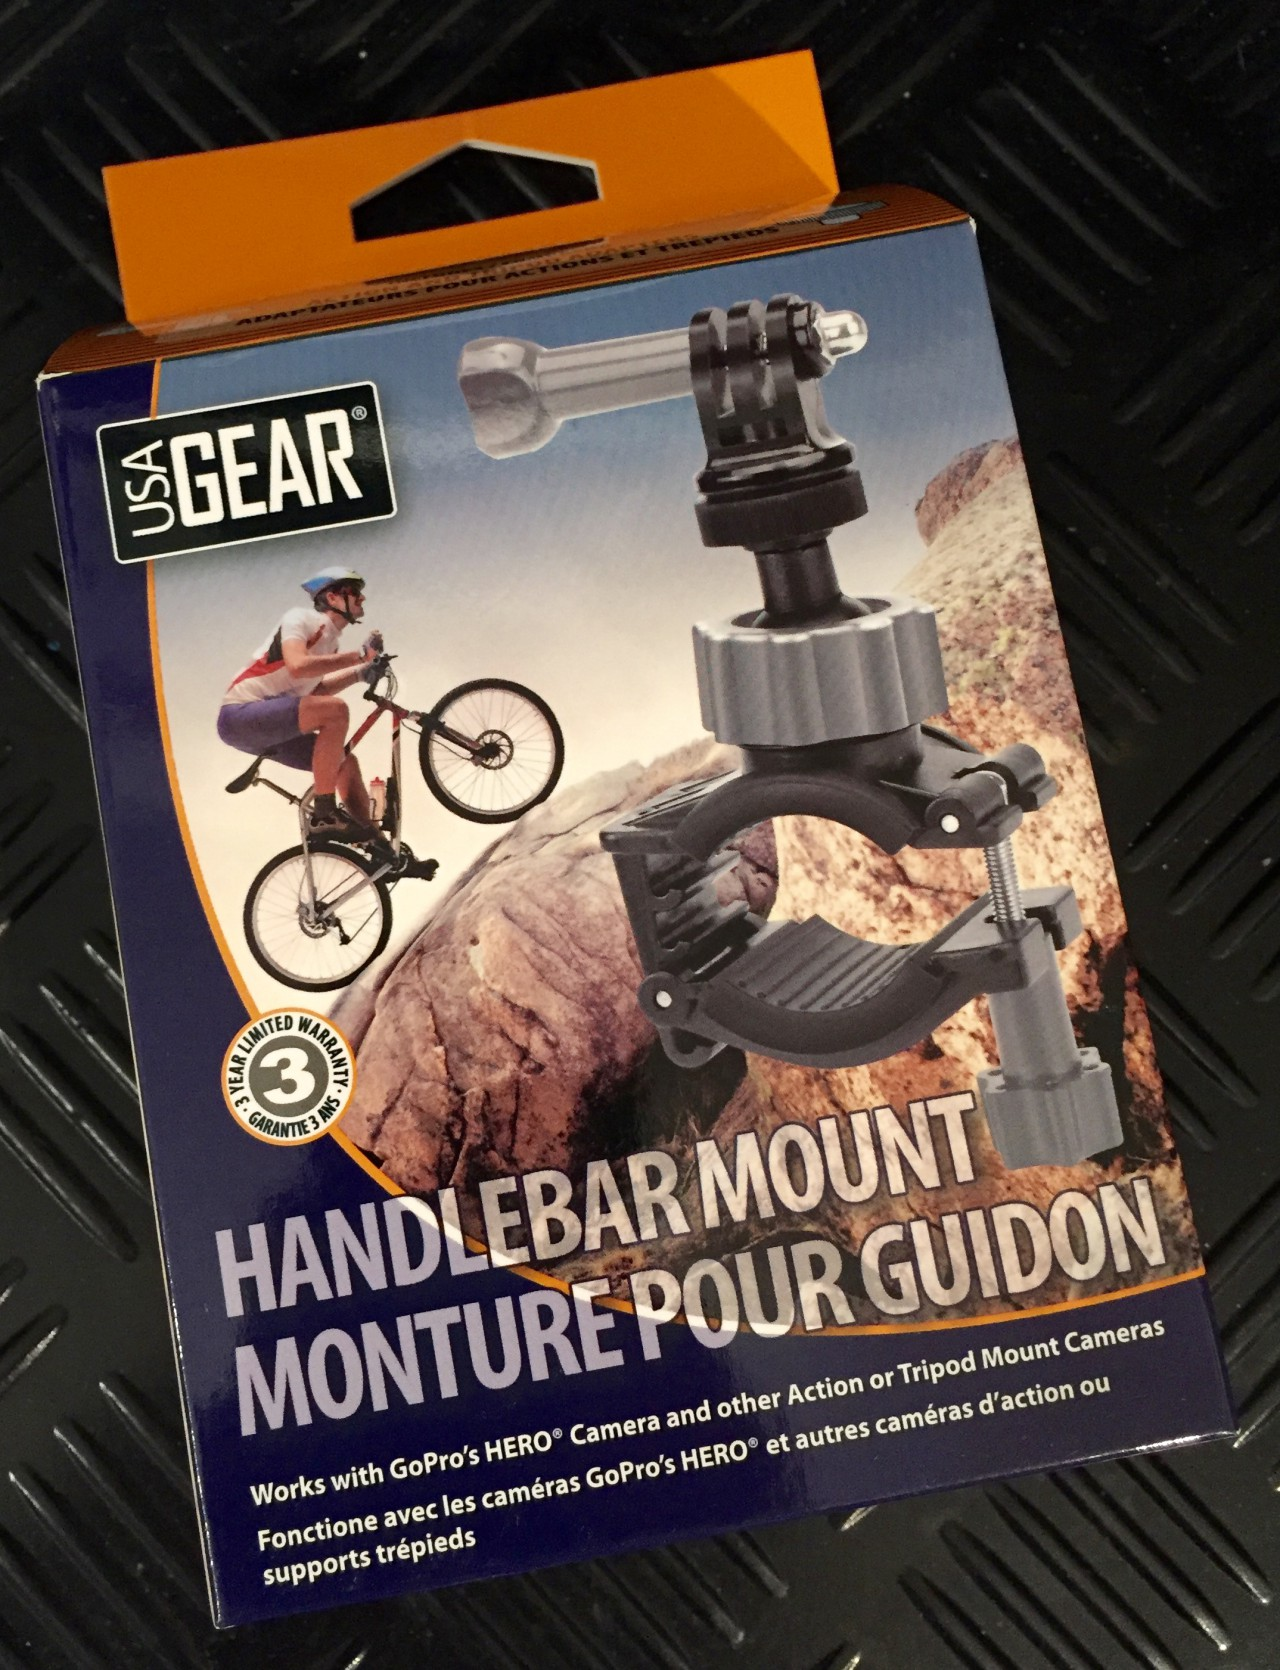 USA Gear - HandlebarMount